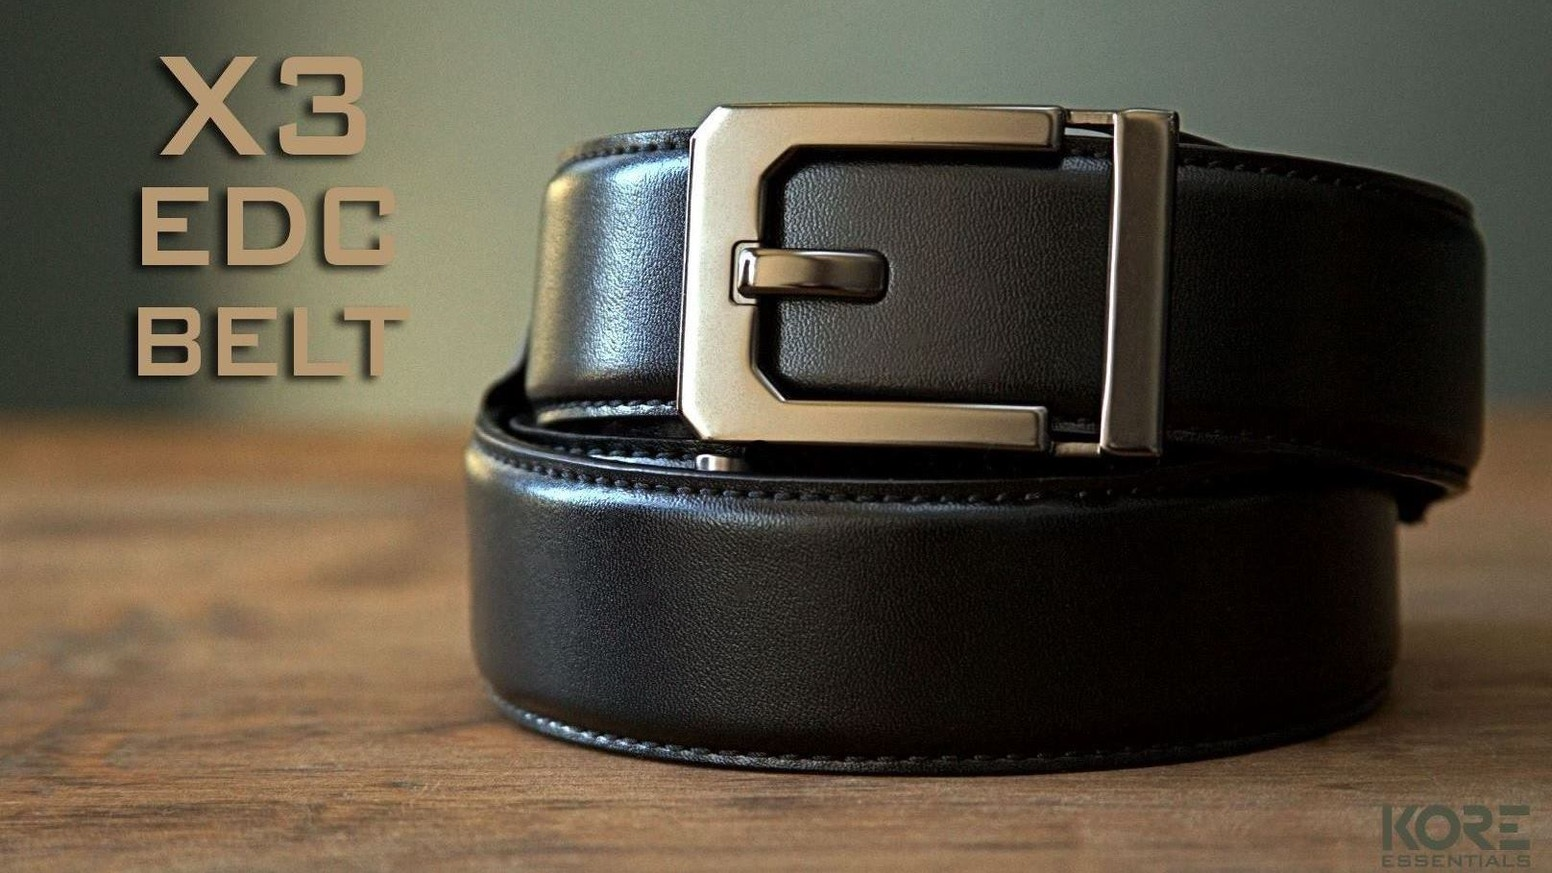 X3 Every Day Carry Belt By Kore Essentials Kore essentials coupon codes for discount shopping at koreessentials.com and save with 123promocode.com. x3 every day carry belt by kore